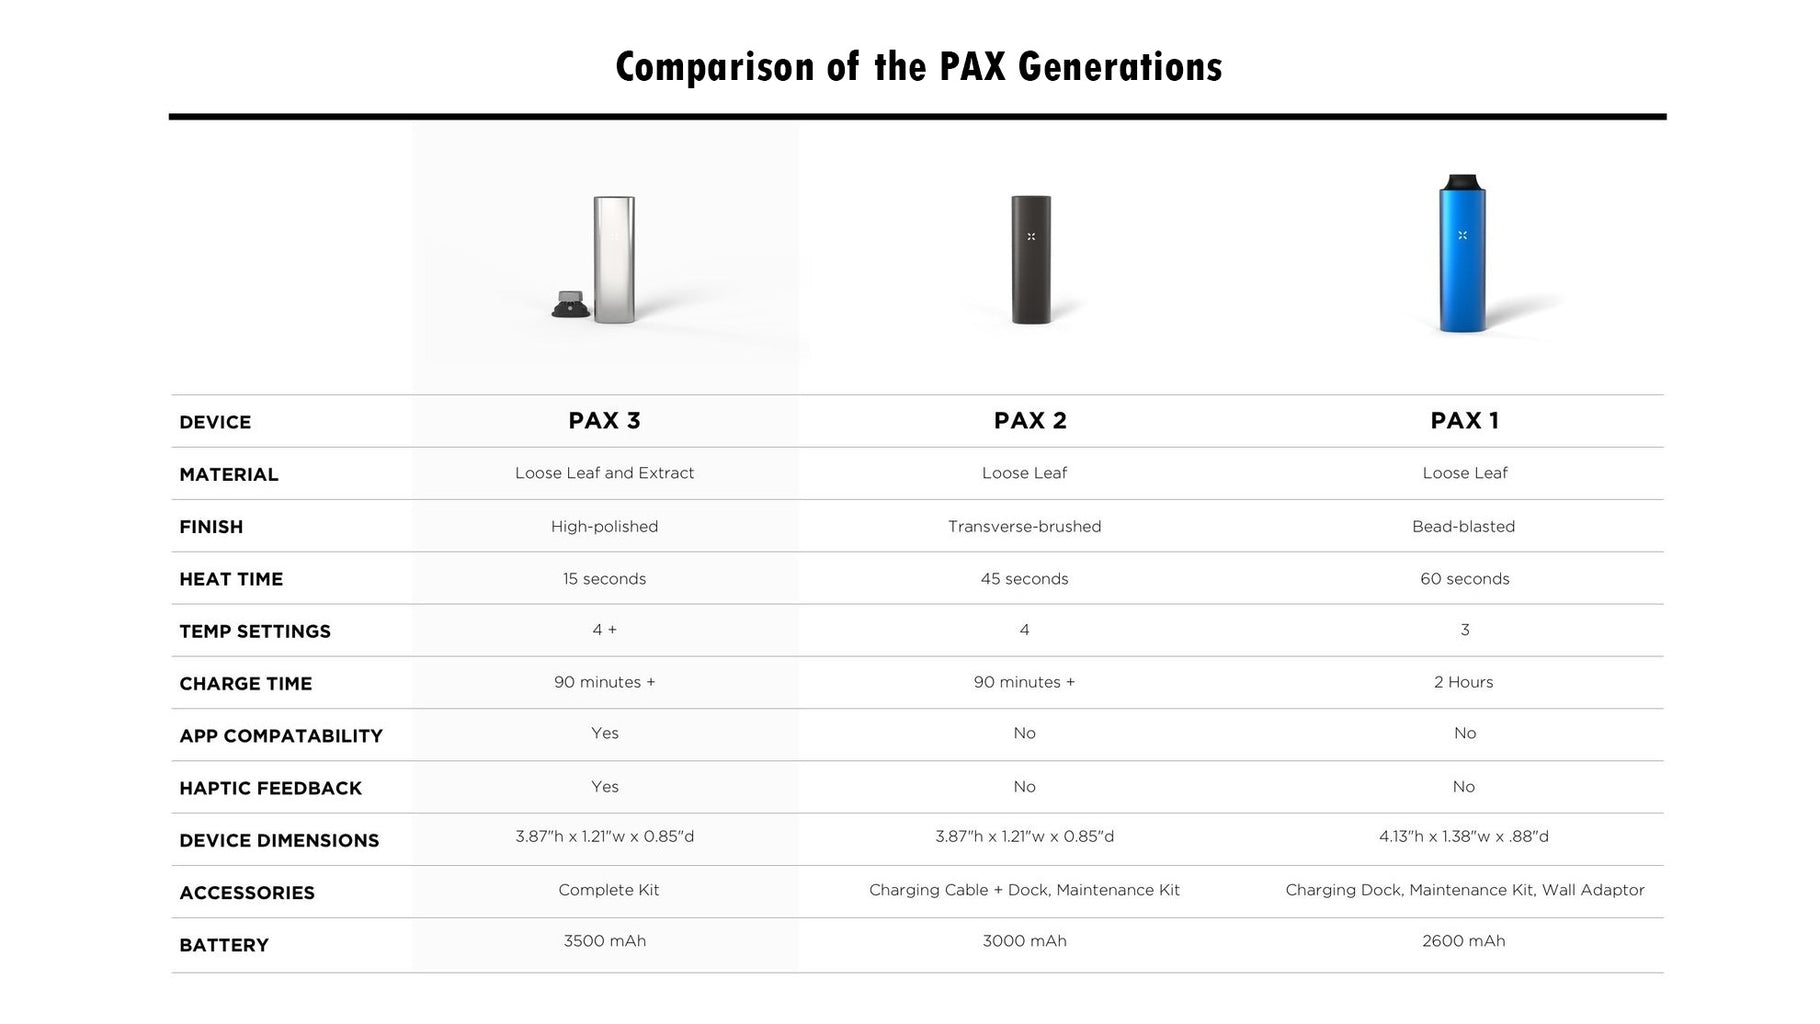 The PAX 3 communicates with you through LED lights that show heating status, battery life, and temperature settings. Save settings and design an experience that you can replicate time and again.